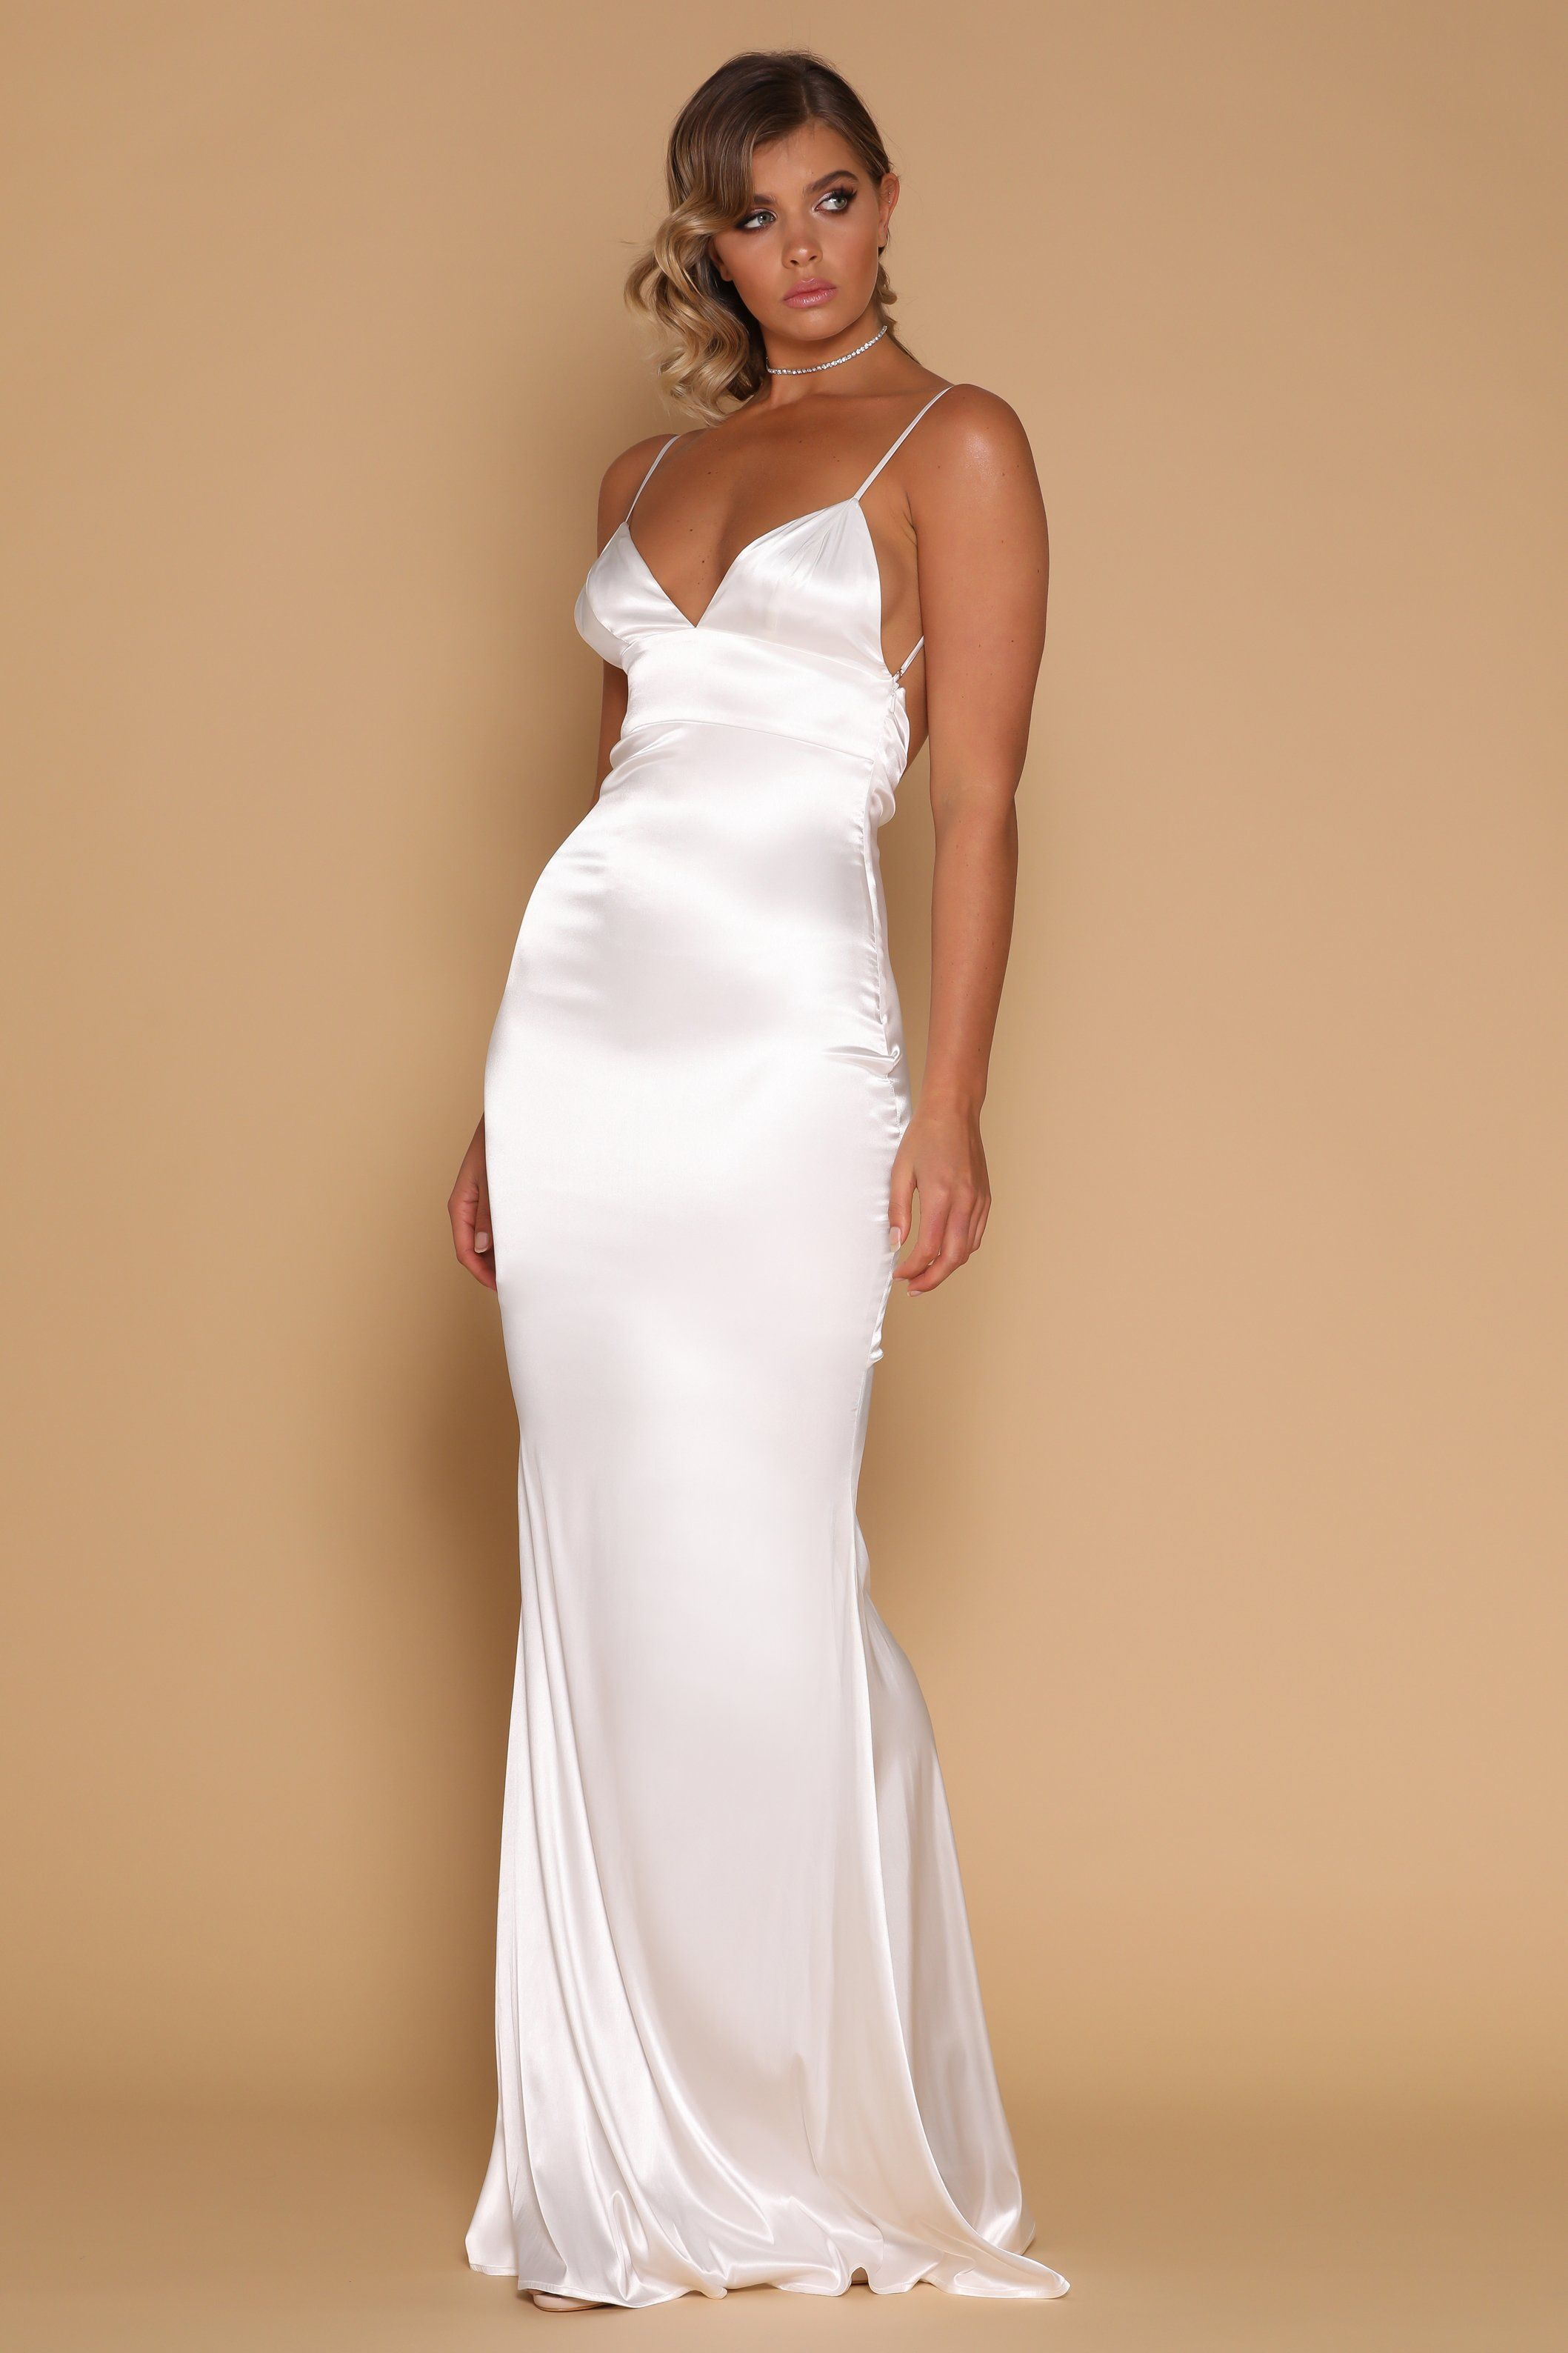 d65571806c White Long Summer Dress . #Fashions #Dresses #Summer_Fashions #Amazing #Wow